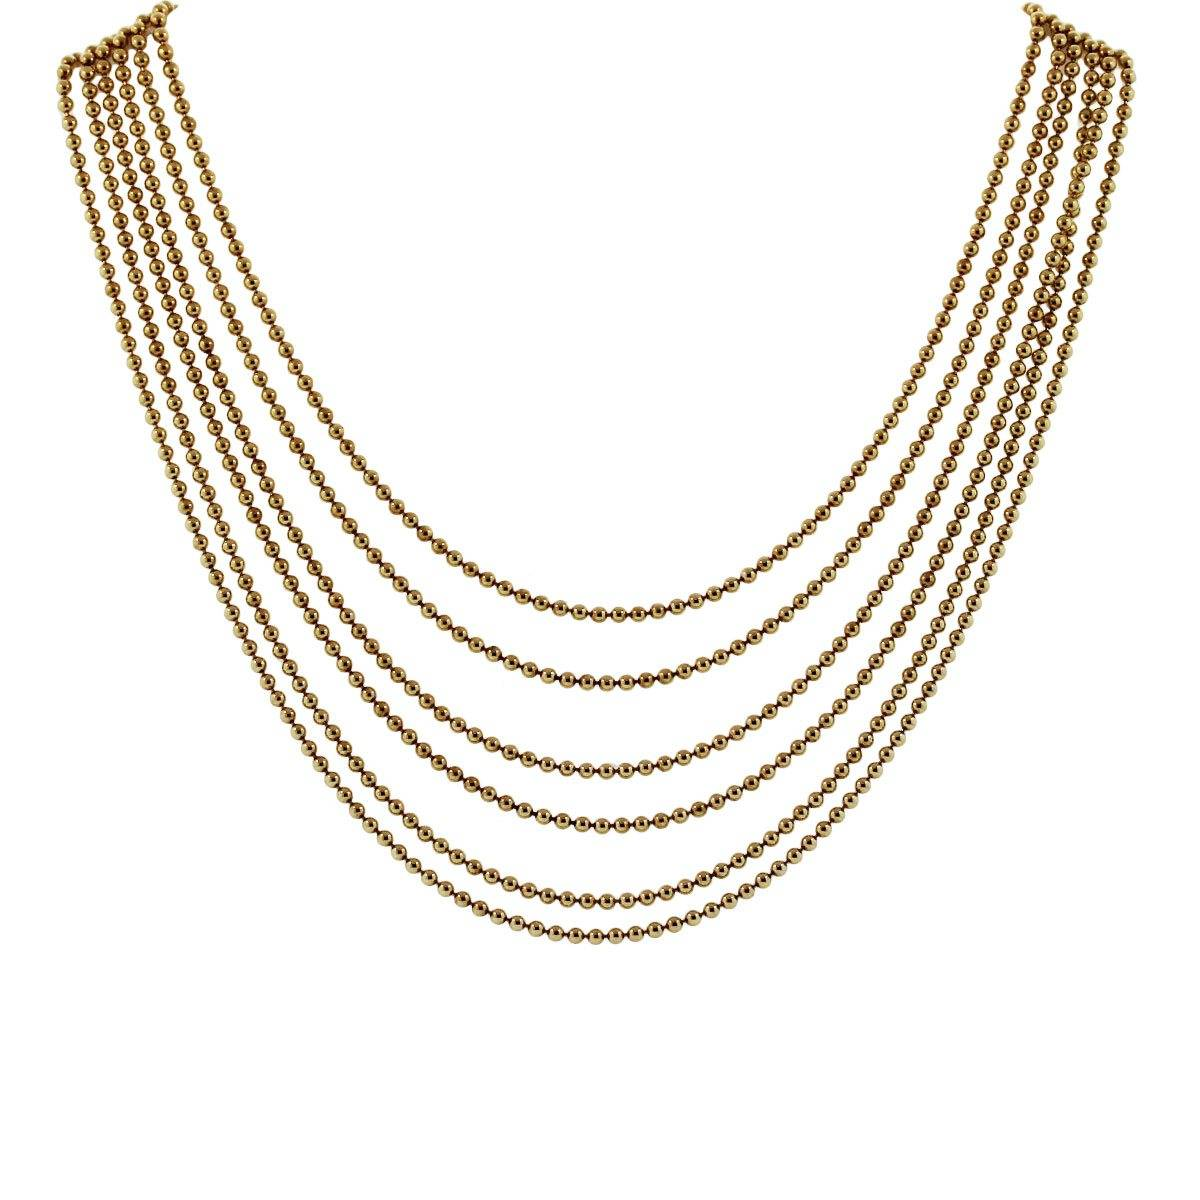 Cartier bead Necklace